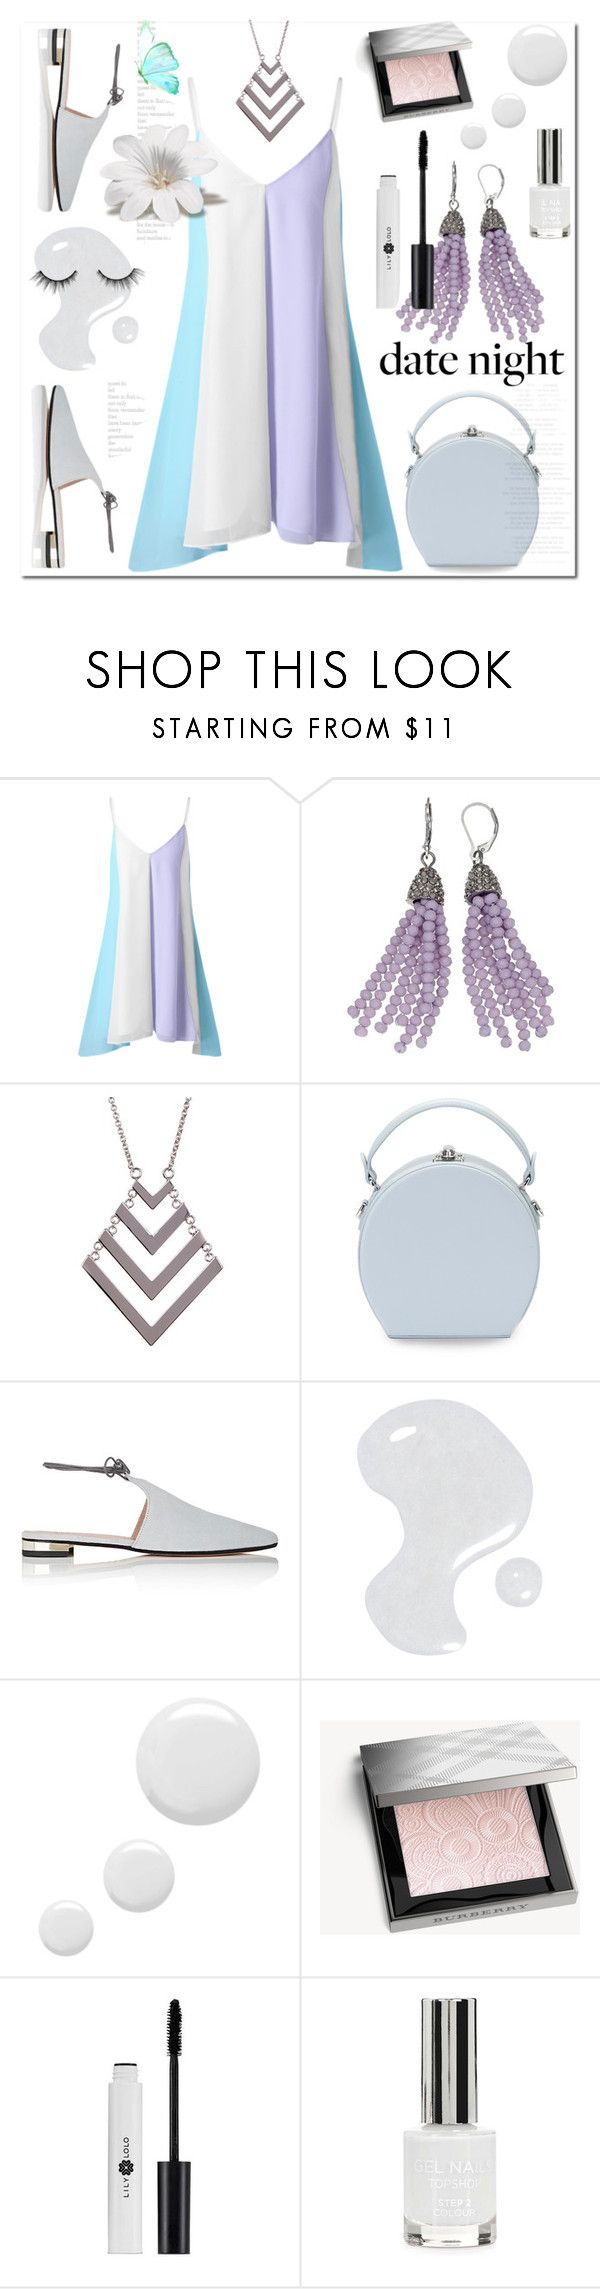 """Без названия #2861"" by ilona-828 ❤ liked on Polyvore featuring Simply Vera, Trina Turk, Handle, Barneys New York, Illamasqua, Topshop, Burberry, tarte and summerdatenight"